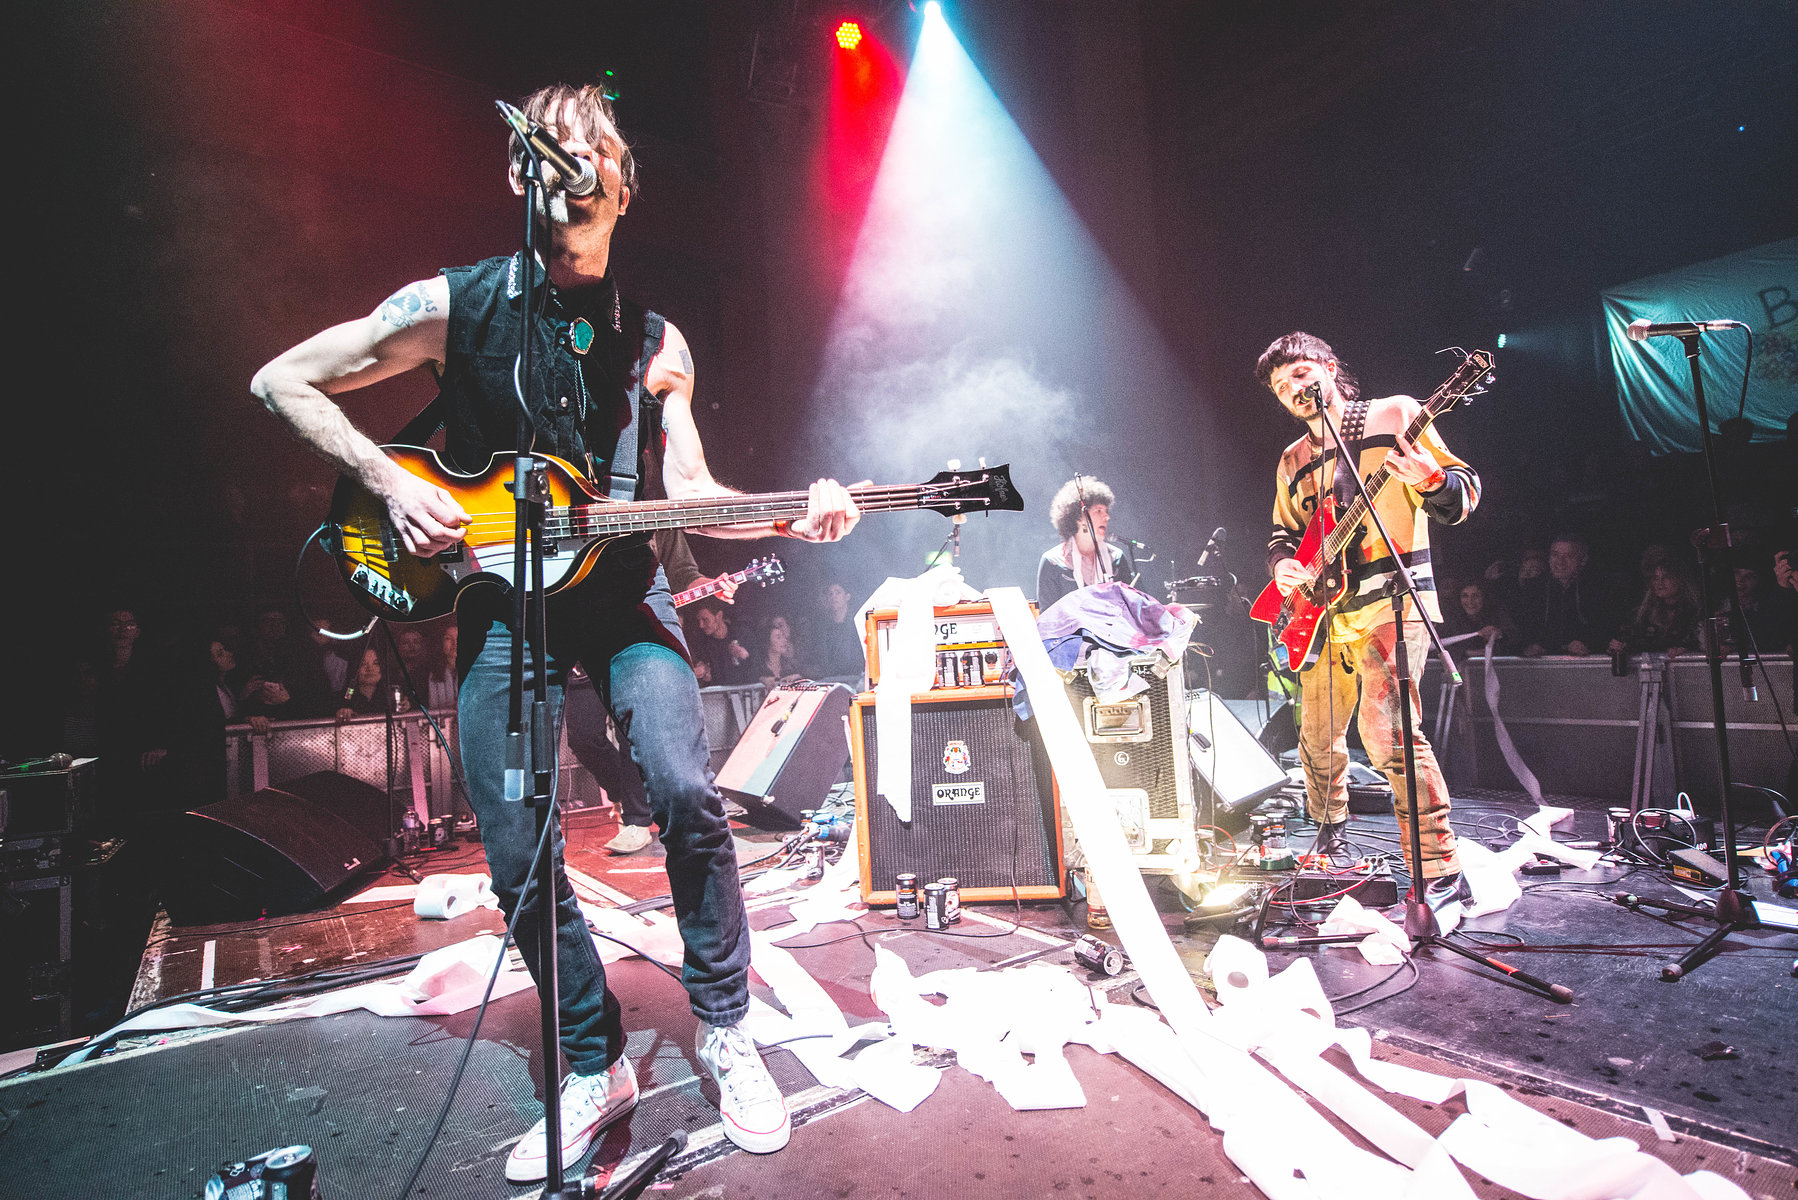 The Black Lips at The Coronet, November 2017